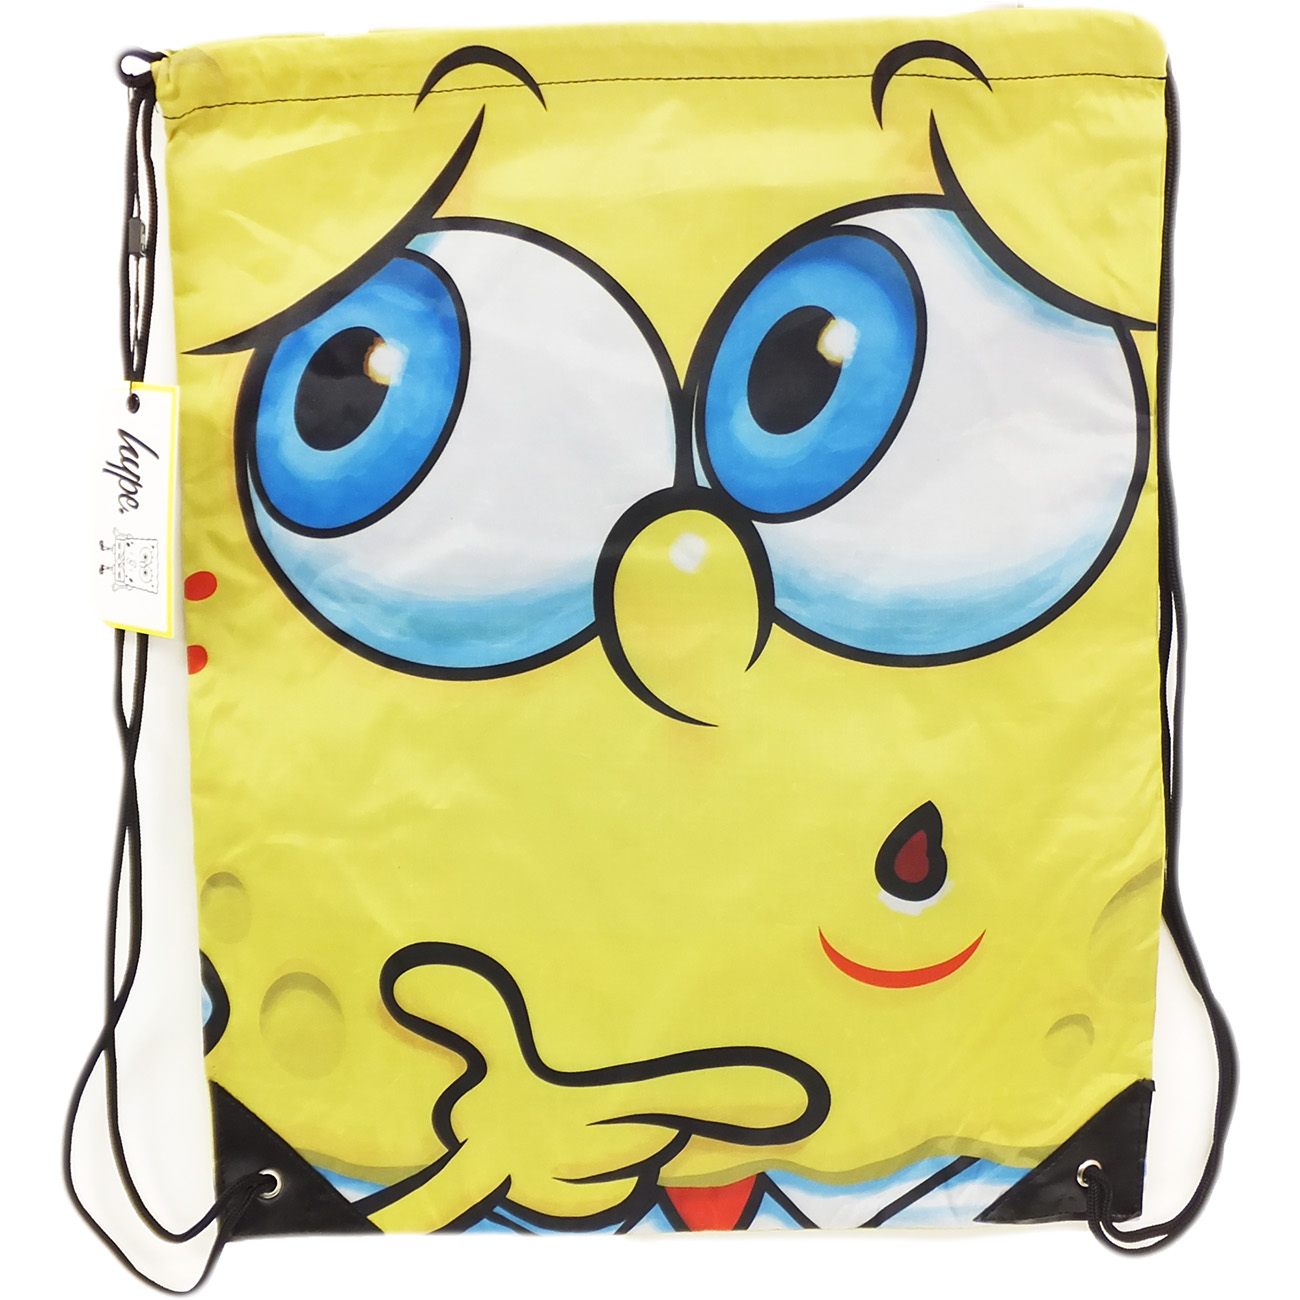 Hype Drawstring Bags - Spongebob Collection